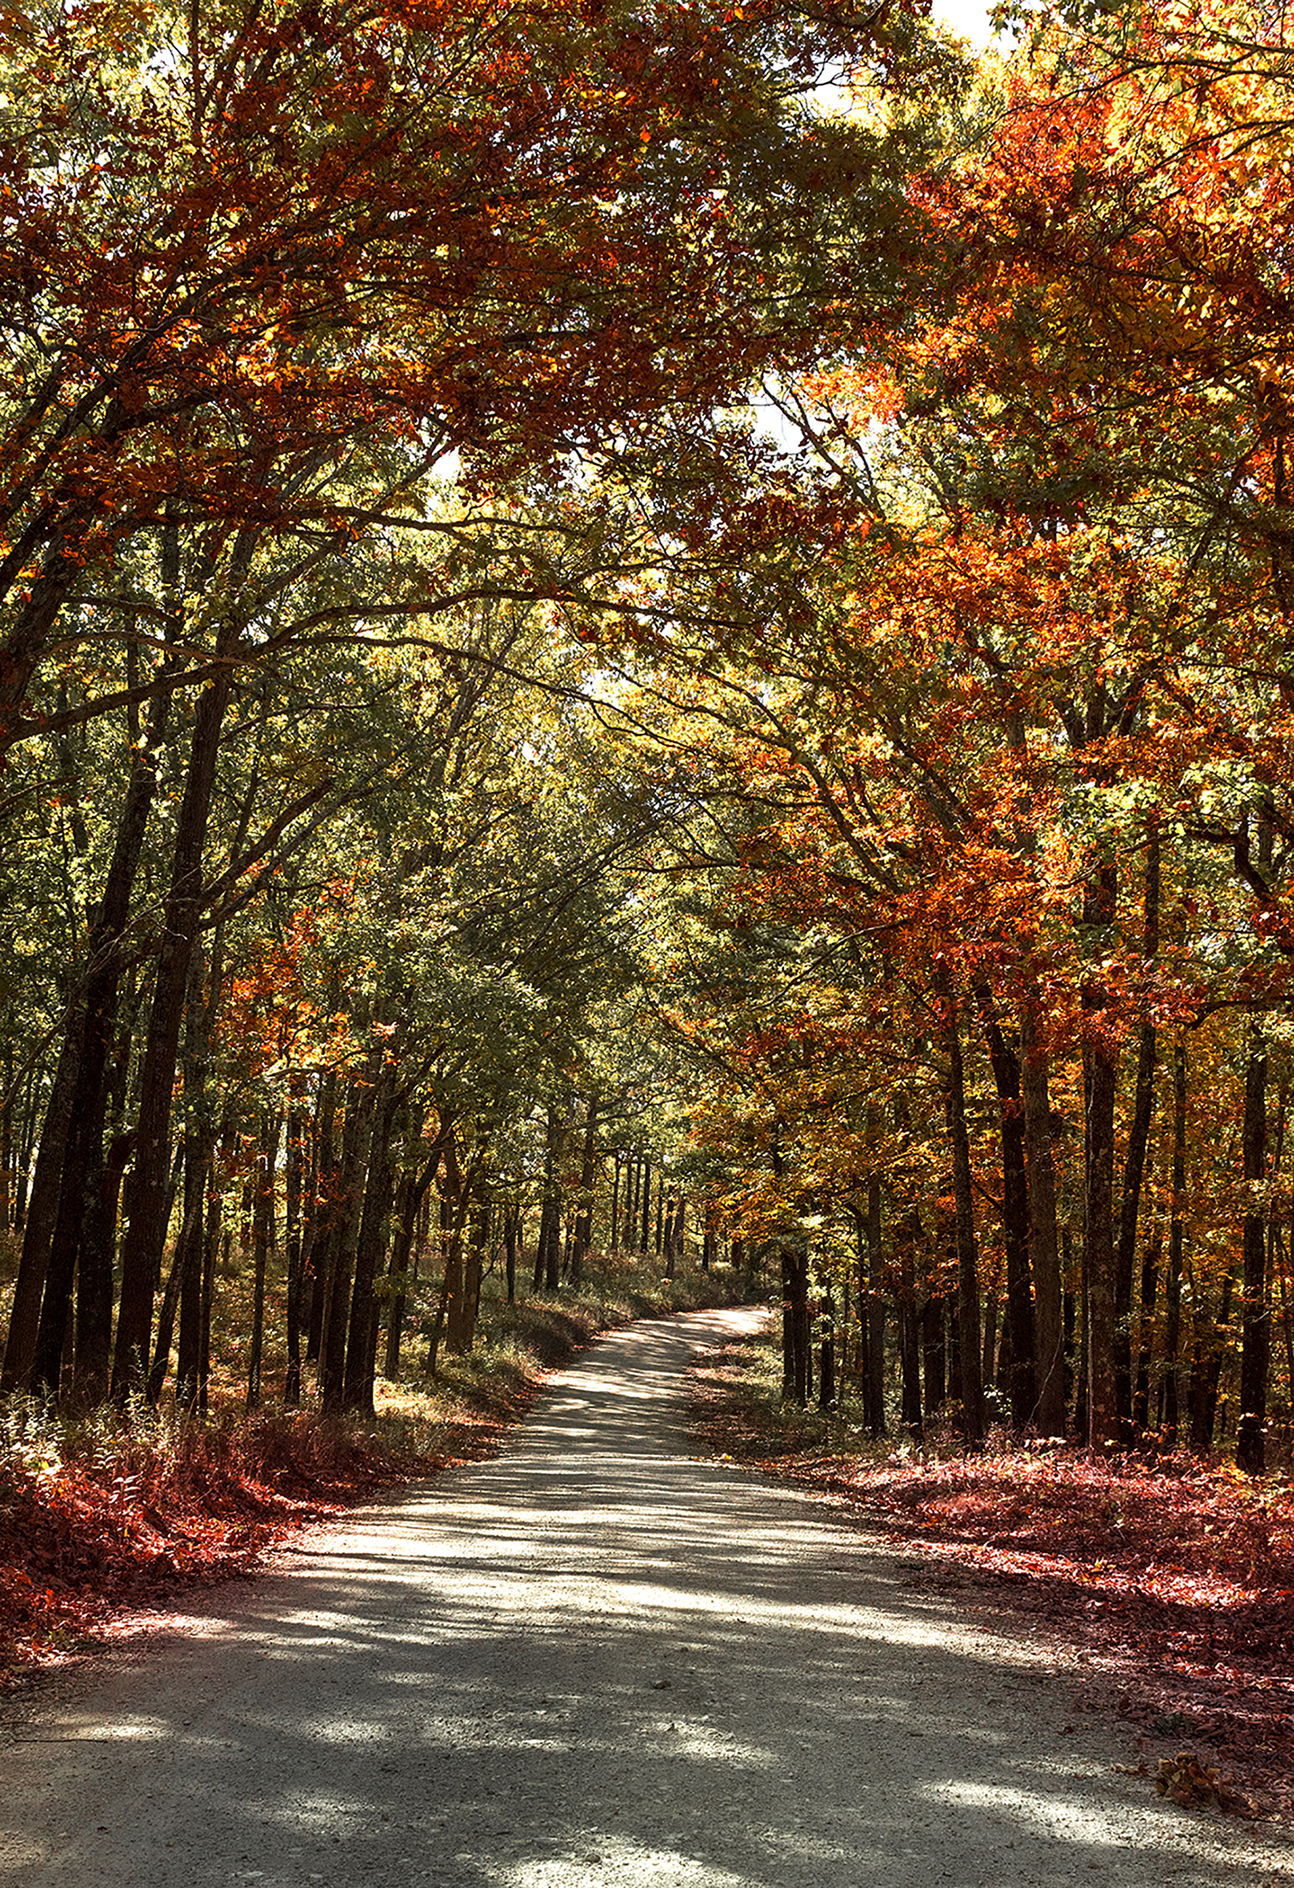 Fall in the Ozarks